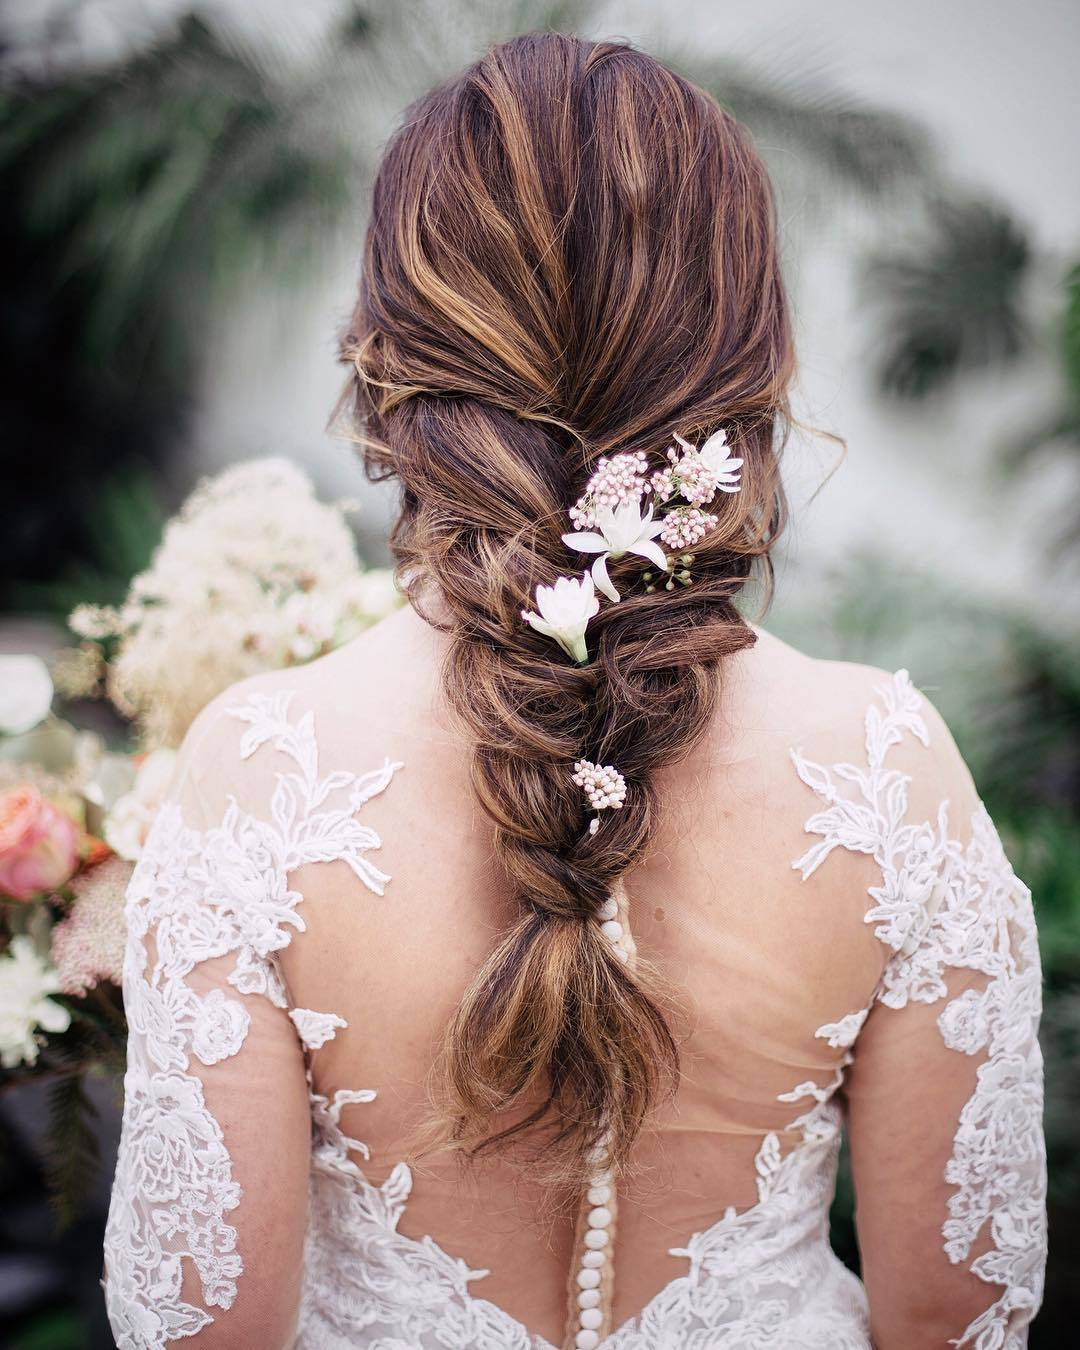 Braided Wedding Hair: 47 Stunning Wedding Hairstyles All Brides Will Love